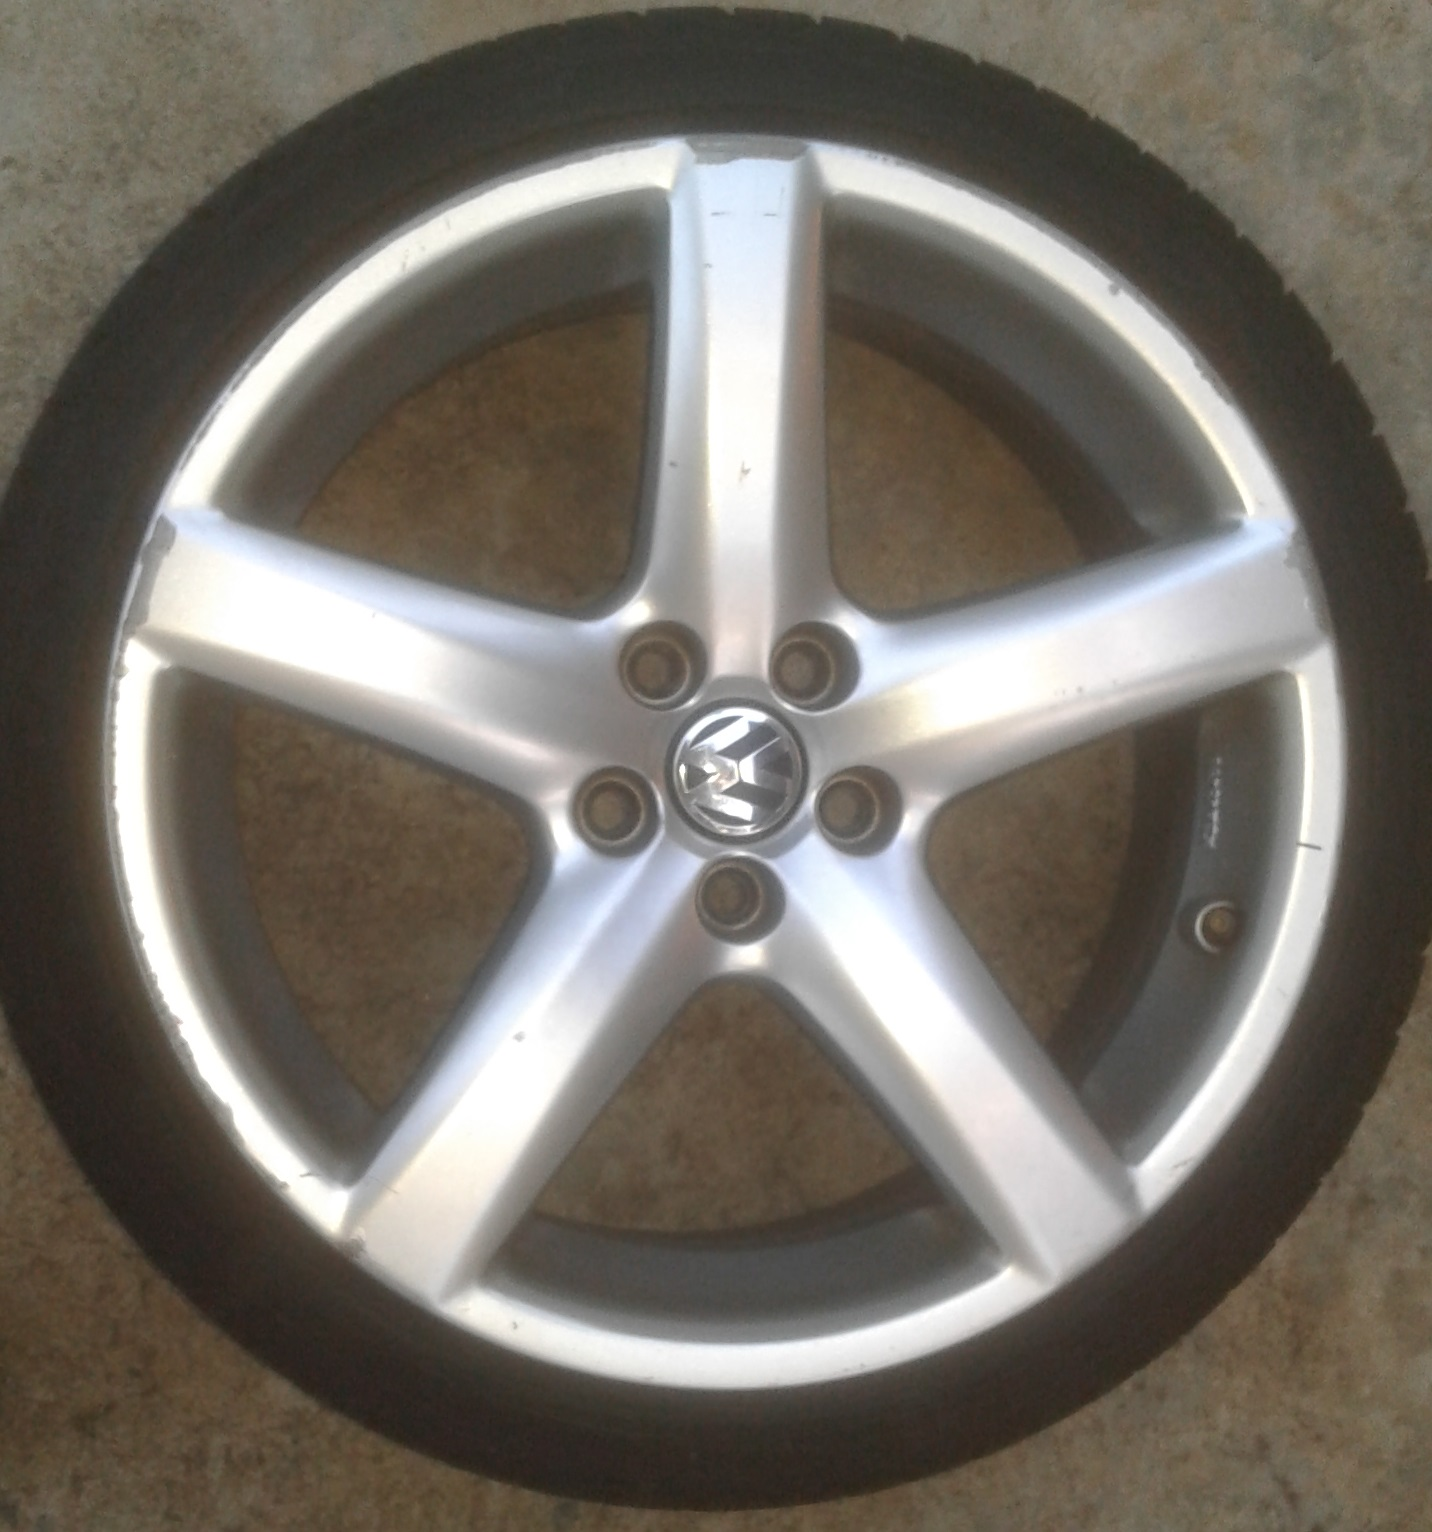 VW Mags 17inch with Sava Tyres 205/40/17 85% tread.